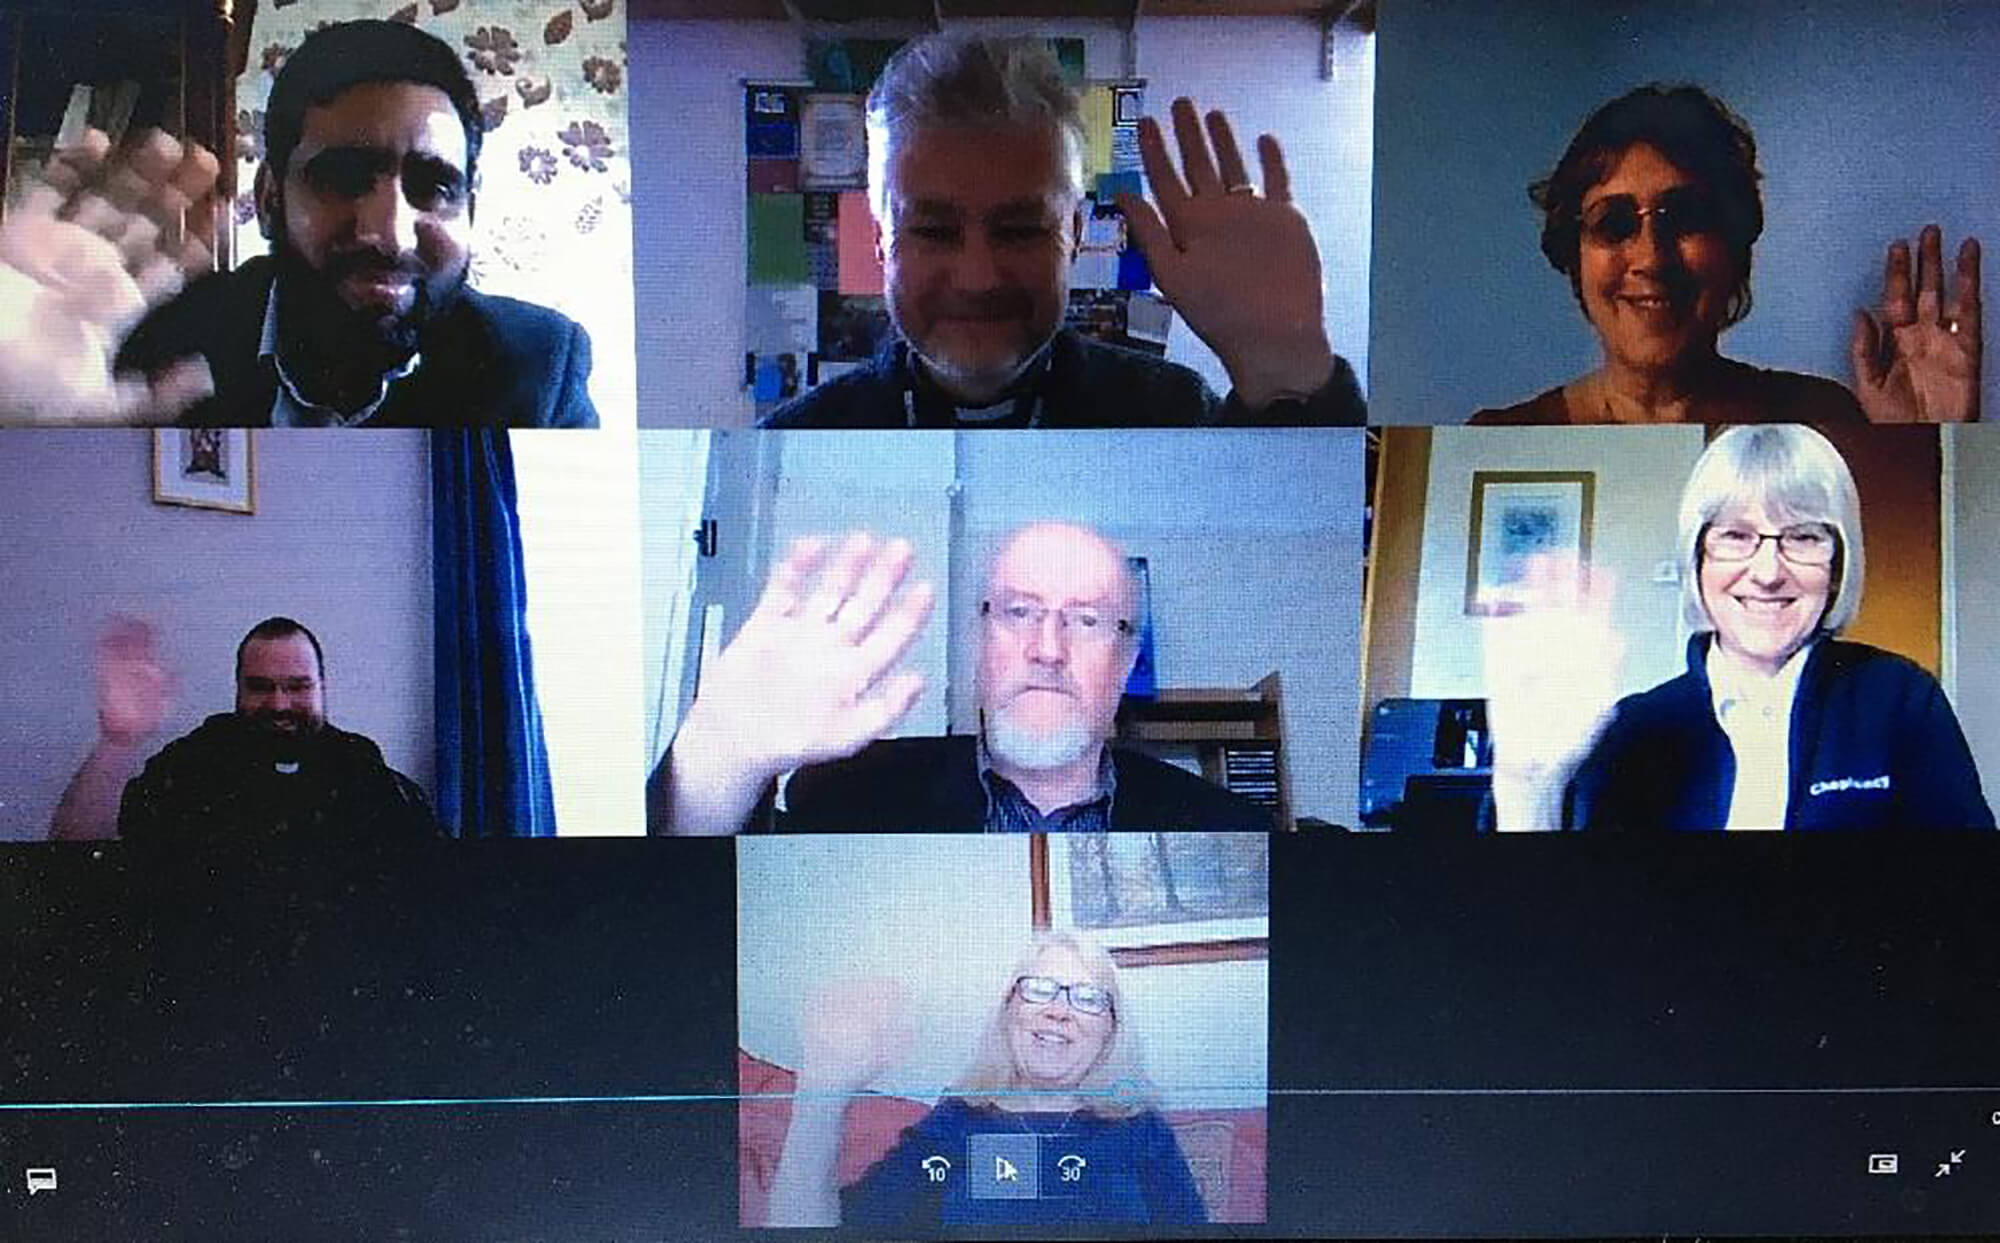 Seven people meeting remotely via a video conferencing platform